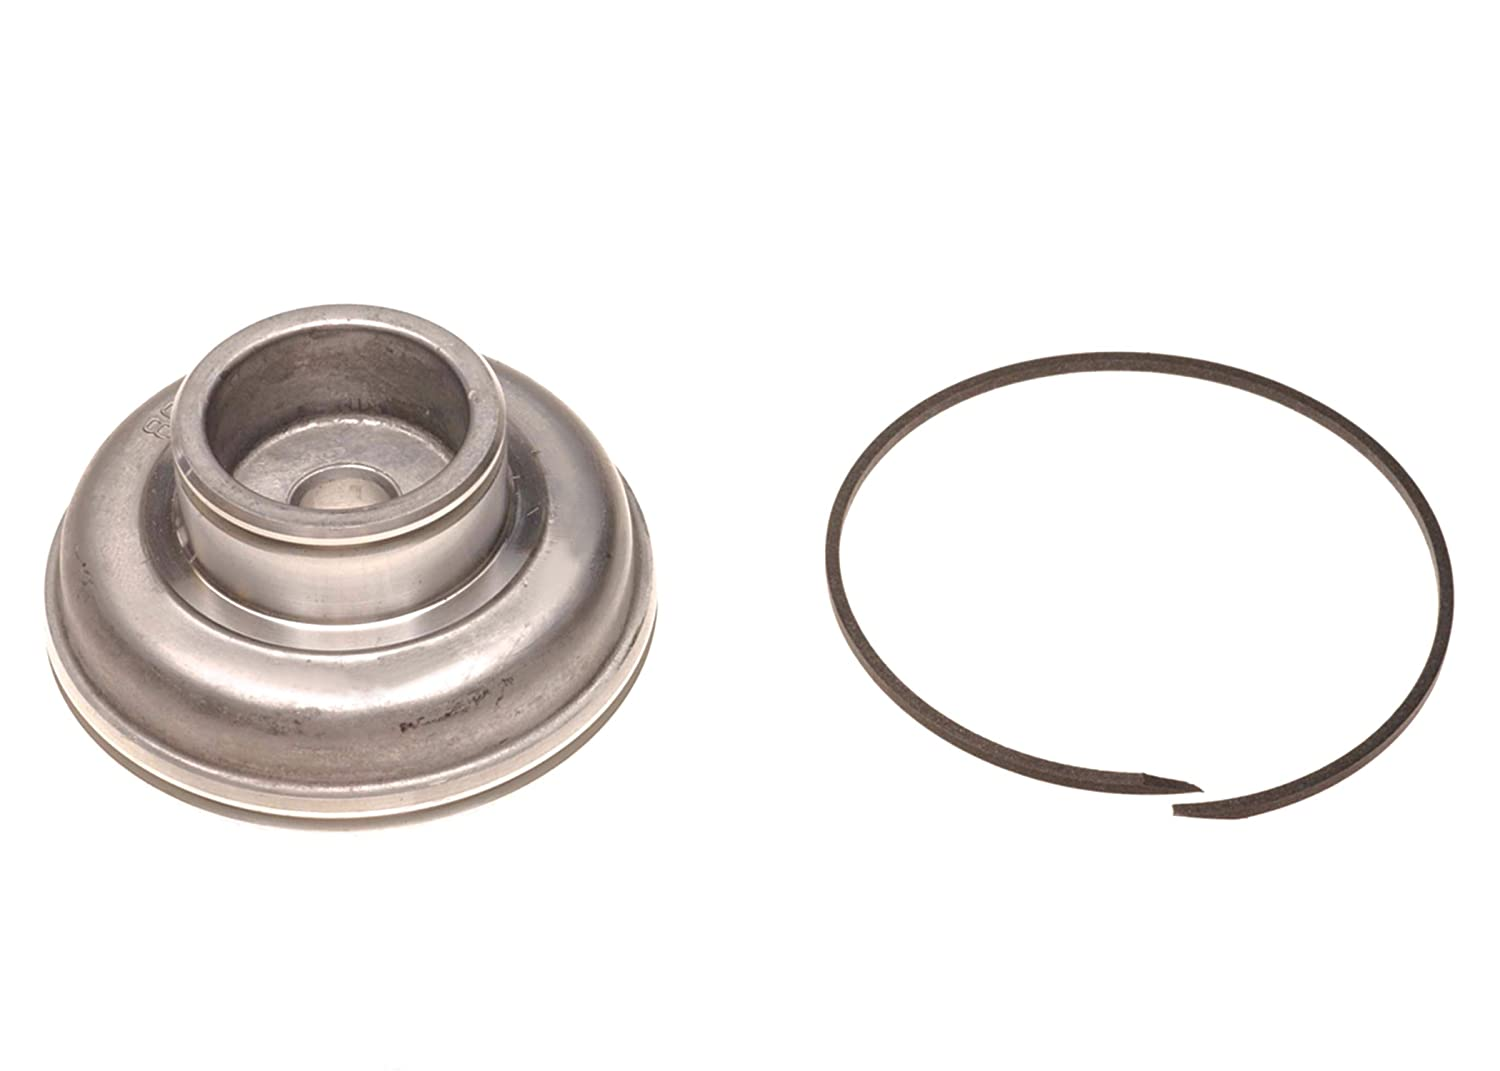 ACDelco 8642079 GM Original Equipment Automatic Transmission Orange 2-4 Band Servo 2nd Apply Piston with Rings 8642079-ACD